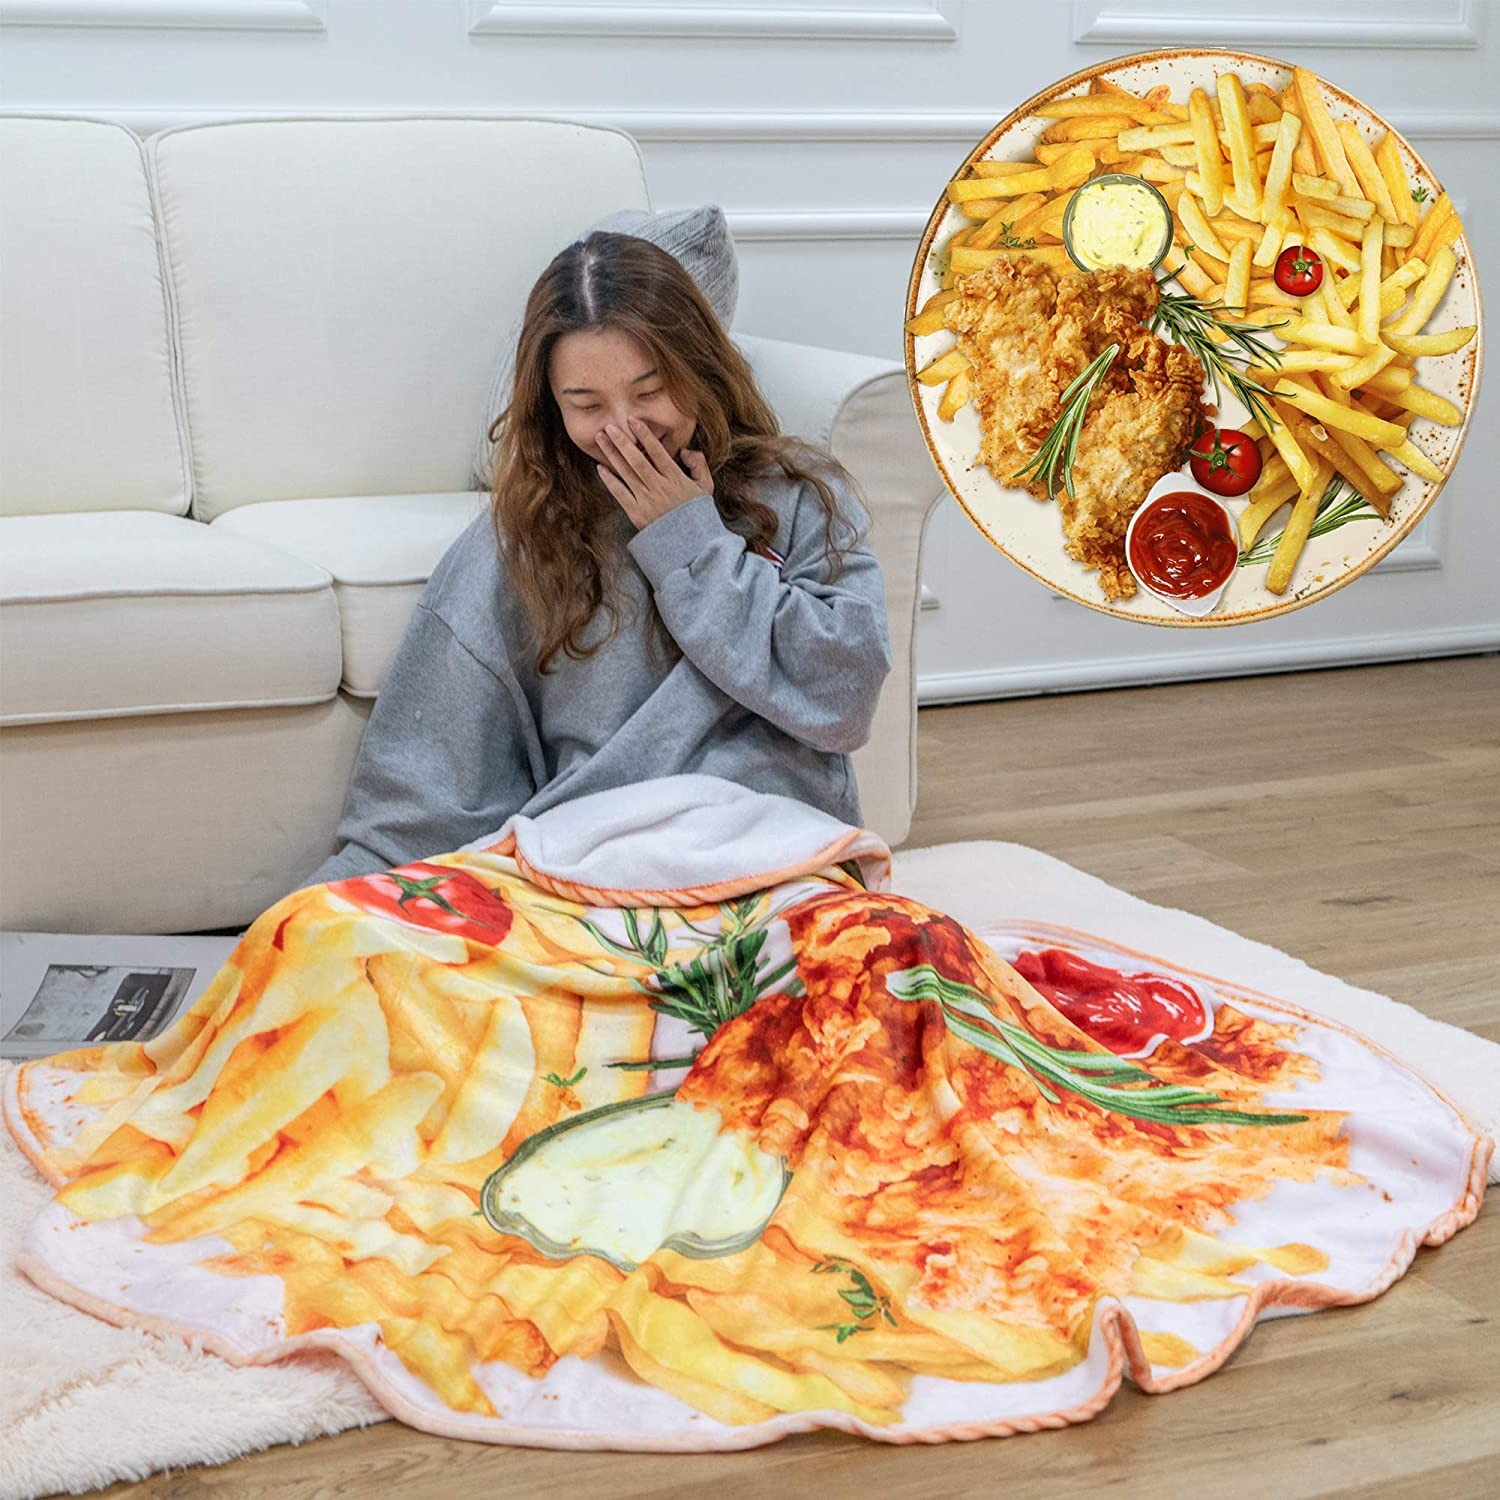 OLIVE HOME Chips Chicken Food Throw Blanket 3D Print Soft Flannel Winter Warm Round Blankets Decorative Blankets For Bed Sofa